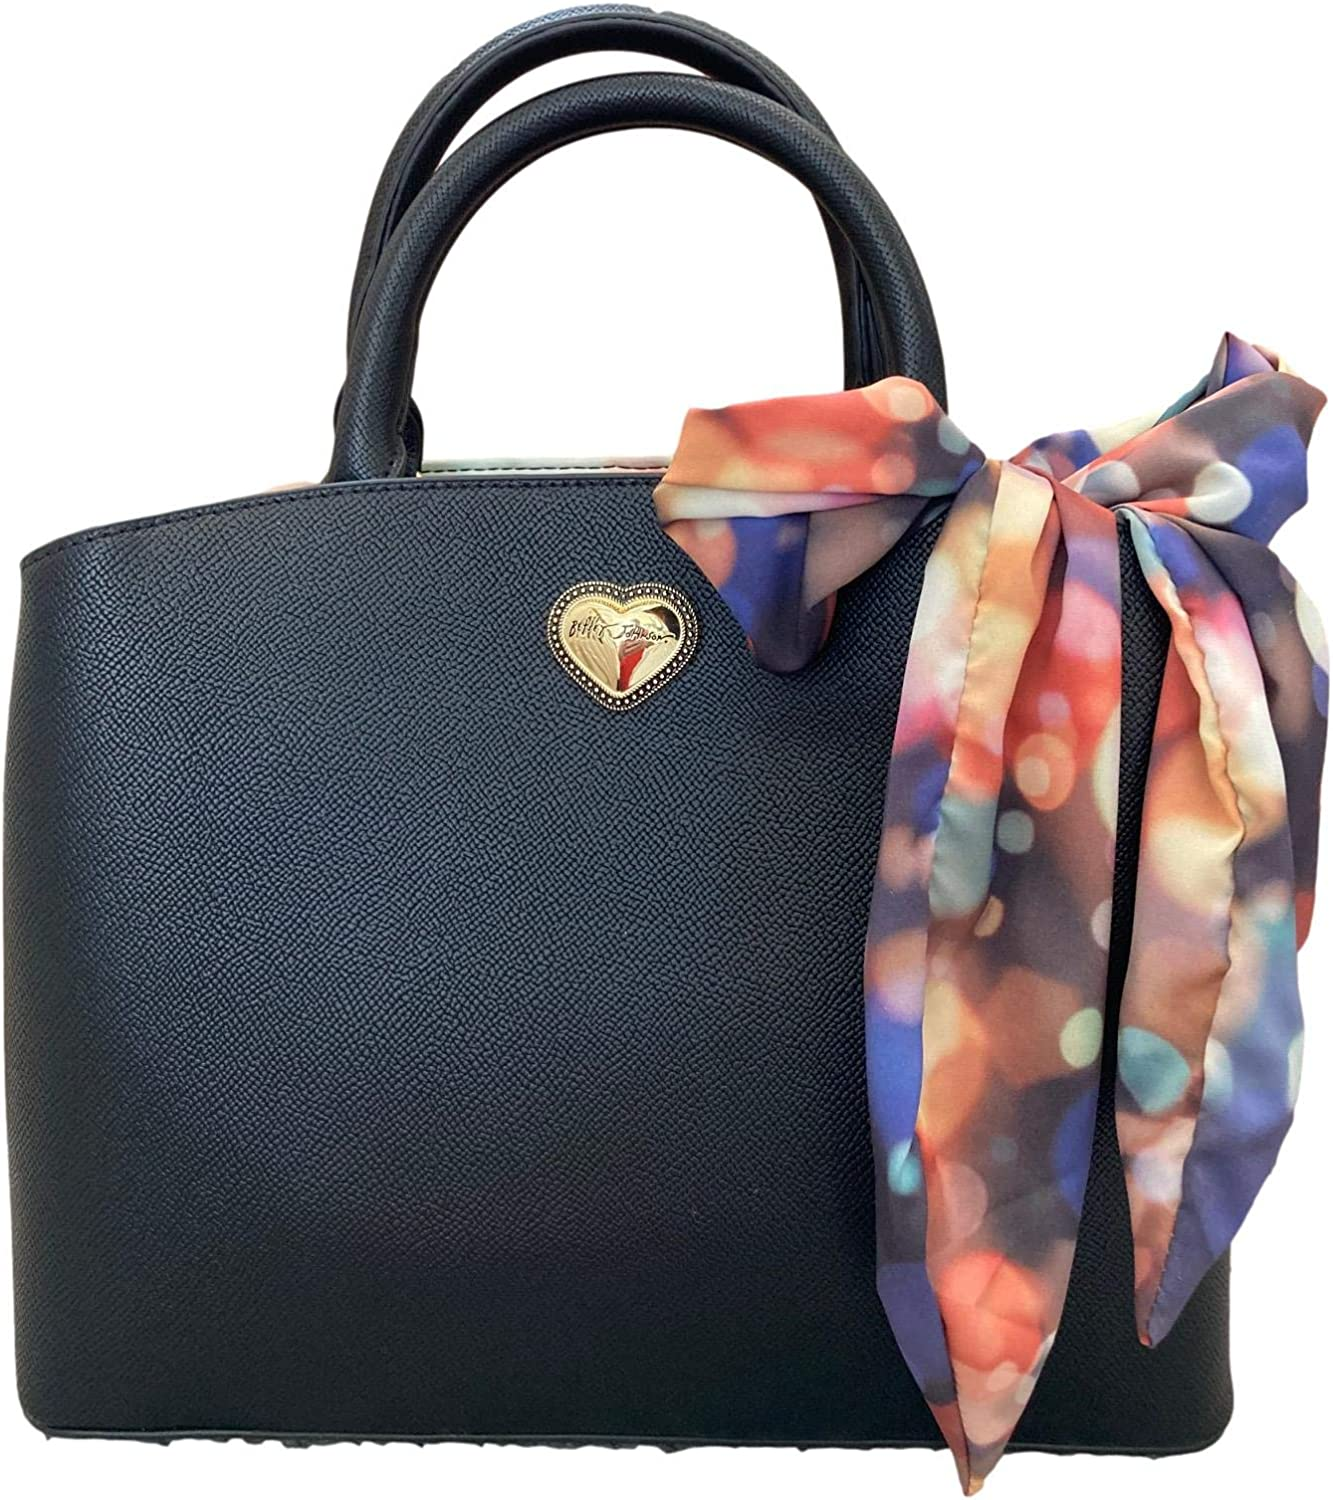 Betsey Johnson Gigi Indianapolis Mall Large-scale sale Triple Scarf Compartment Satchel with